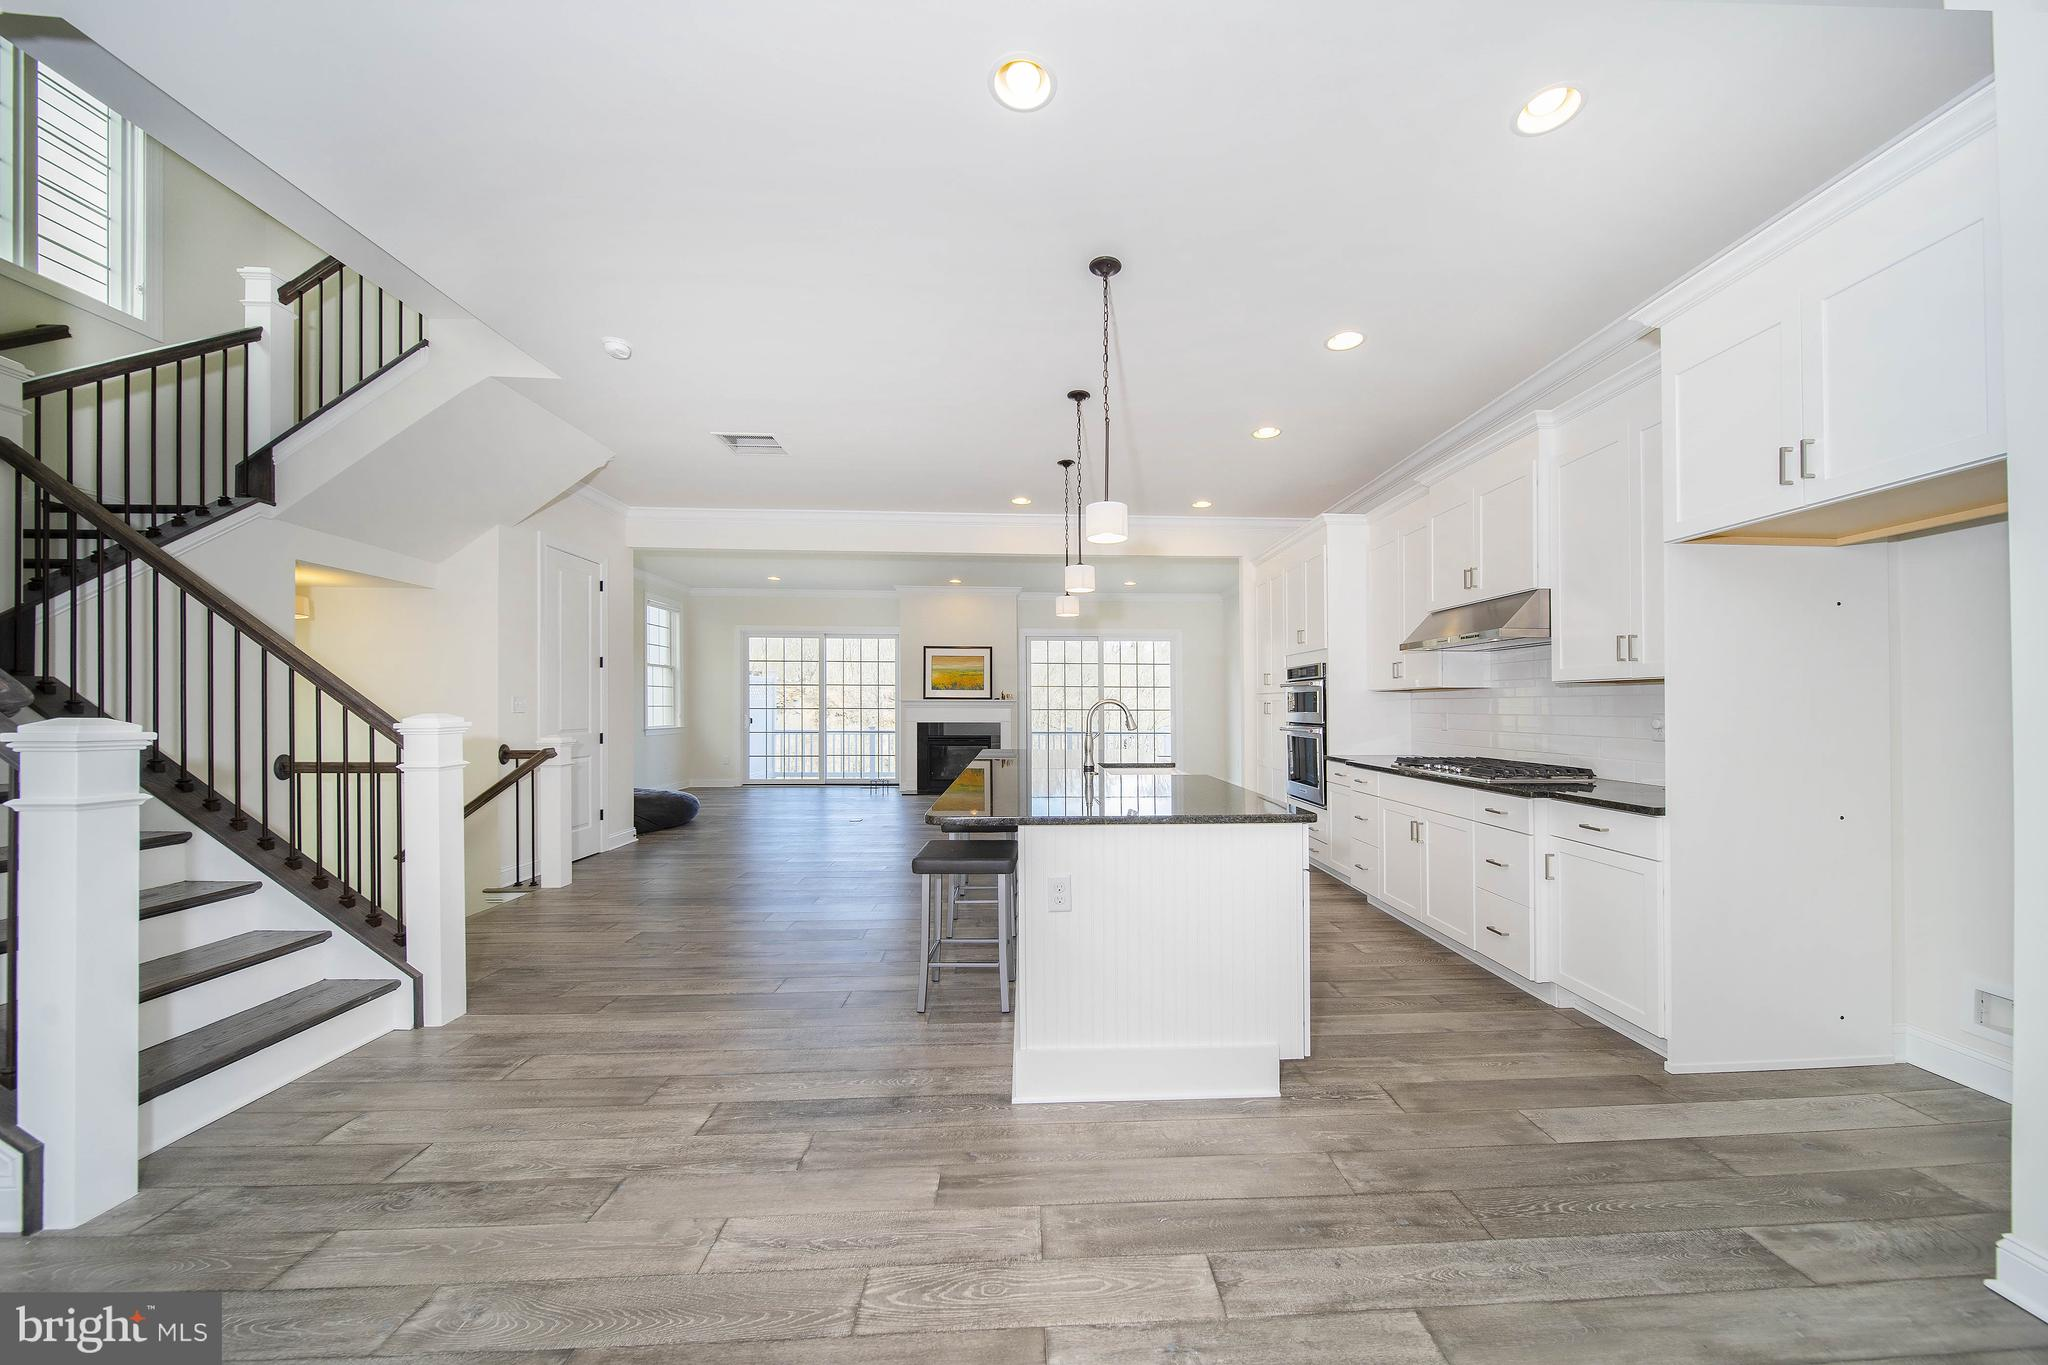 Visit this home virtually: http://www.vht.com/434064641/IDXS - Here is your chance to own new construction in the desired Highlands/Rockford Park area! Built by the award-winning Montchanin Builders in late summer 2019, this luxurious townhome offers beautiful views overlooking Rockford Falls and the Brandywine River. Open floor plan with a gourmet kitchen, granite countertops and hardwood flooring throughout. Entry level offers a flexible recreation room (or could be a home office or fourth bedroom if desired) with a fully tiled bathroom. Walk out, full daylight, unfinished basement is a blank canvas for extra storage space or more finished space in the future. Ideally located within walking distance to Trolley Square shopping, restaurants, hospitals and with easy access to all major highways, this location really is superb. Call today for your personal tour!